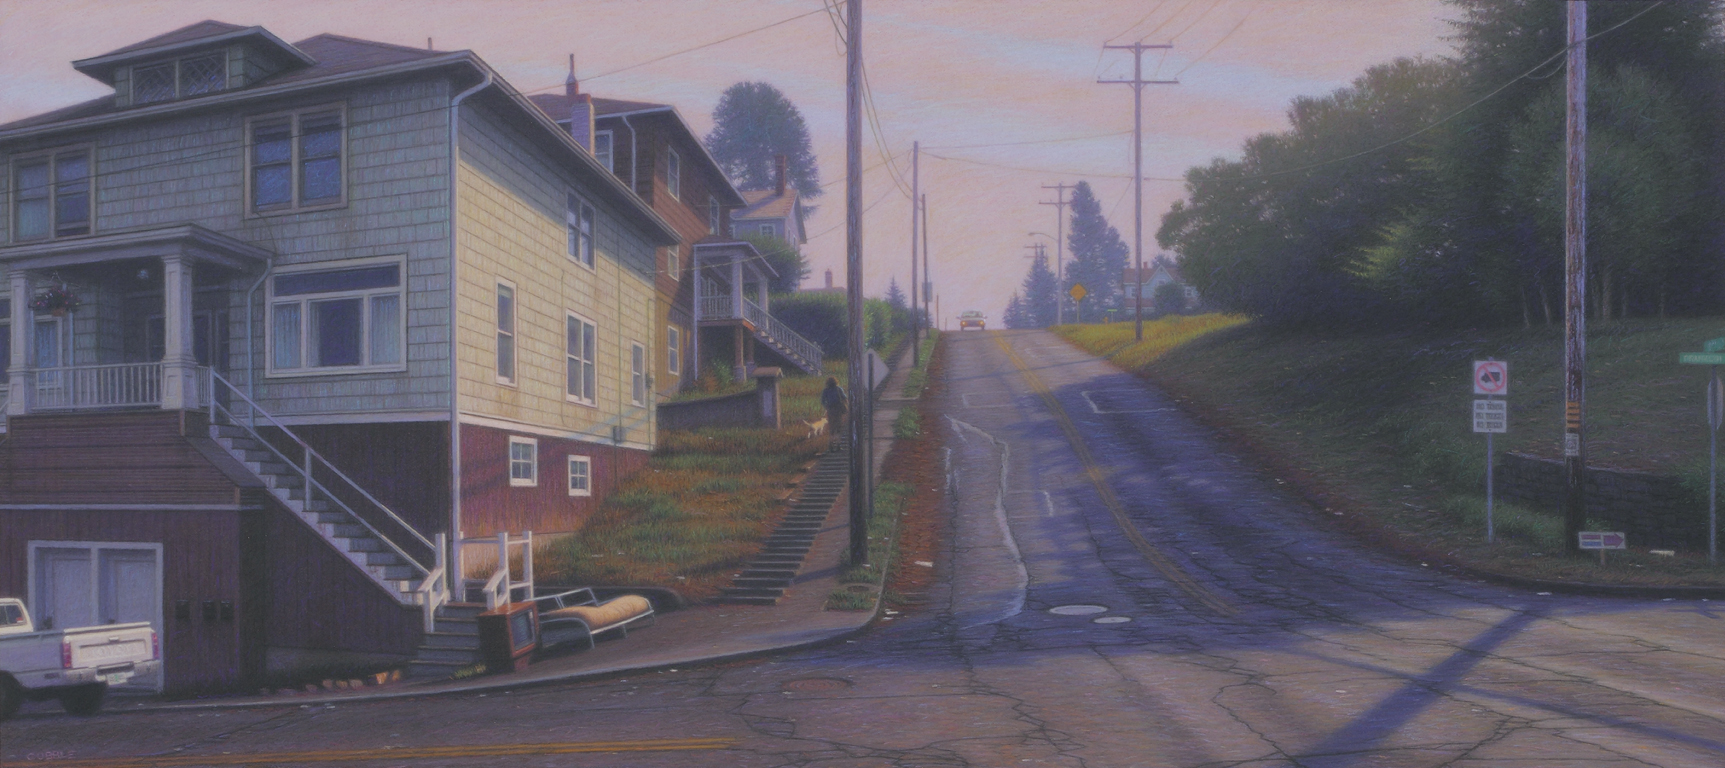 Franklin & 8th, 2014, pastel on Strathmore illustration board mounted on birch plywood, 15 1/8 x 33 7/8 inches